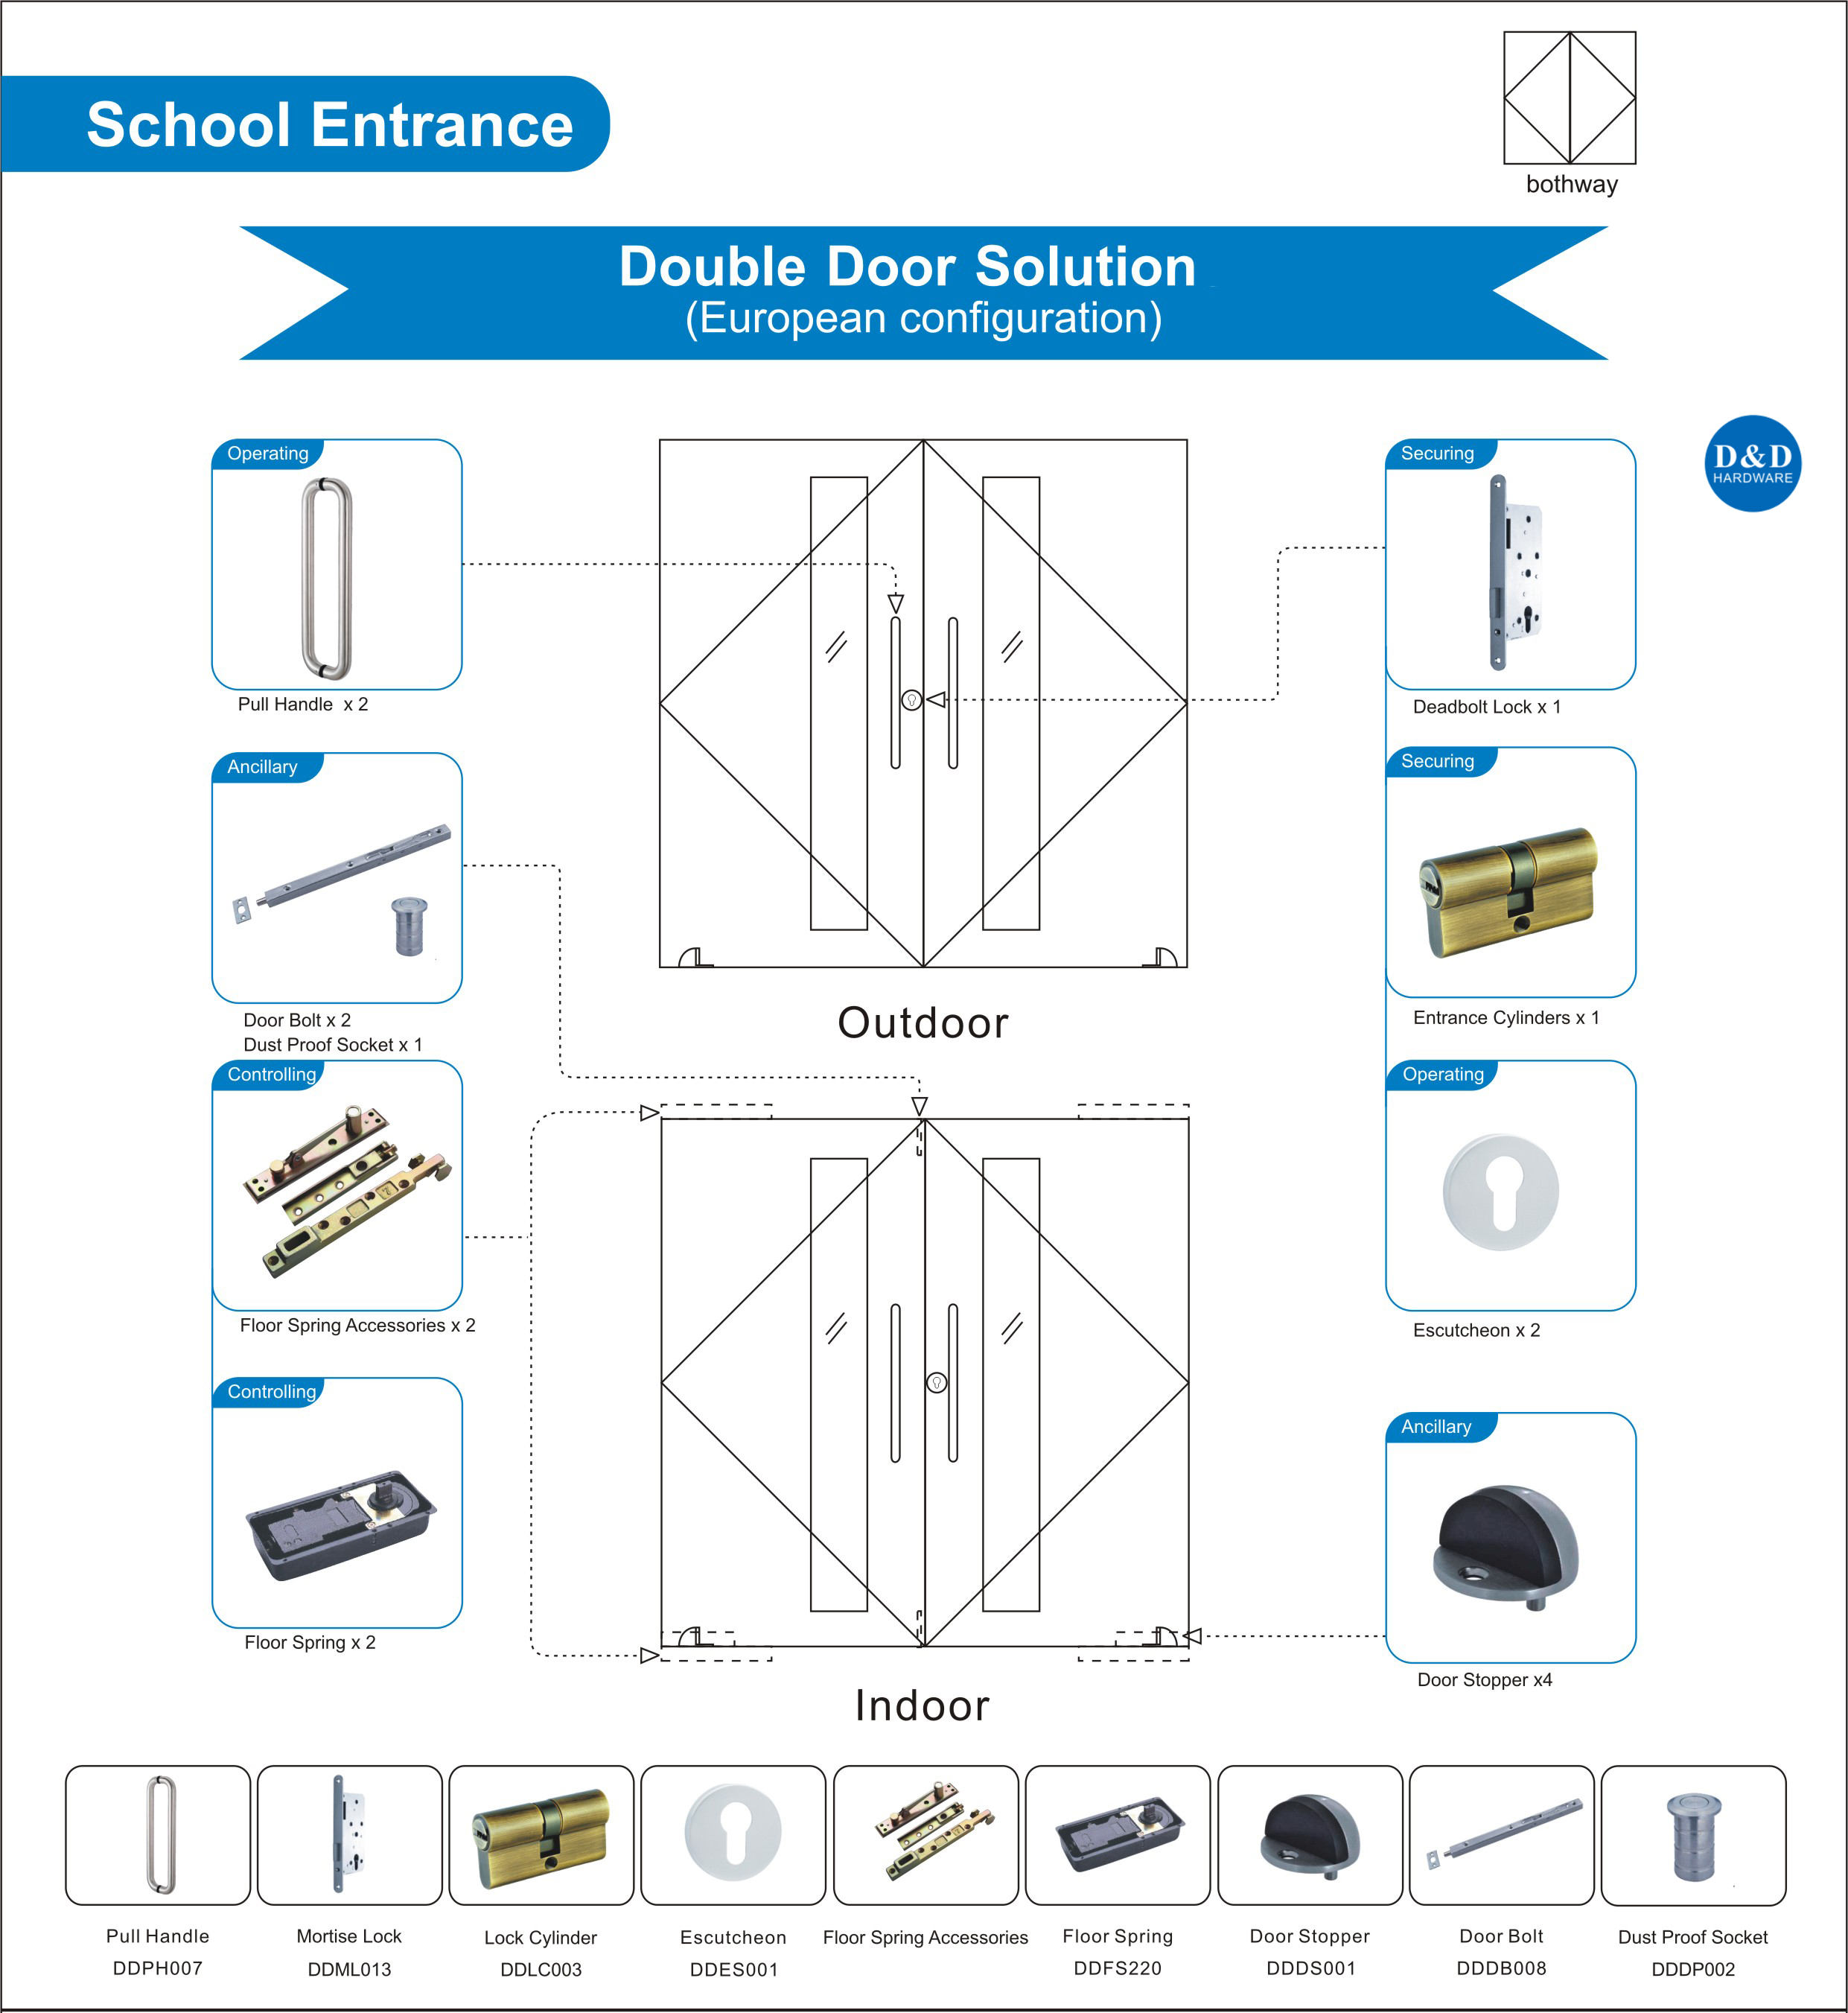 Door Hardware Solution for School Entrance Double Door